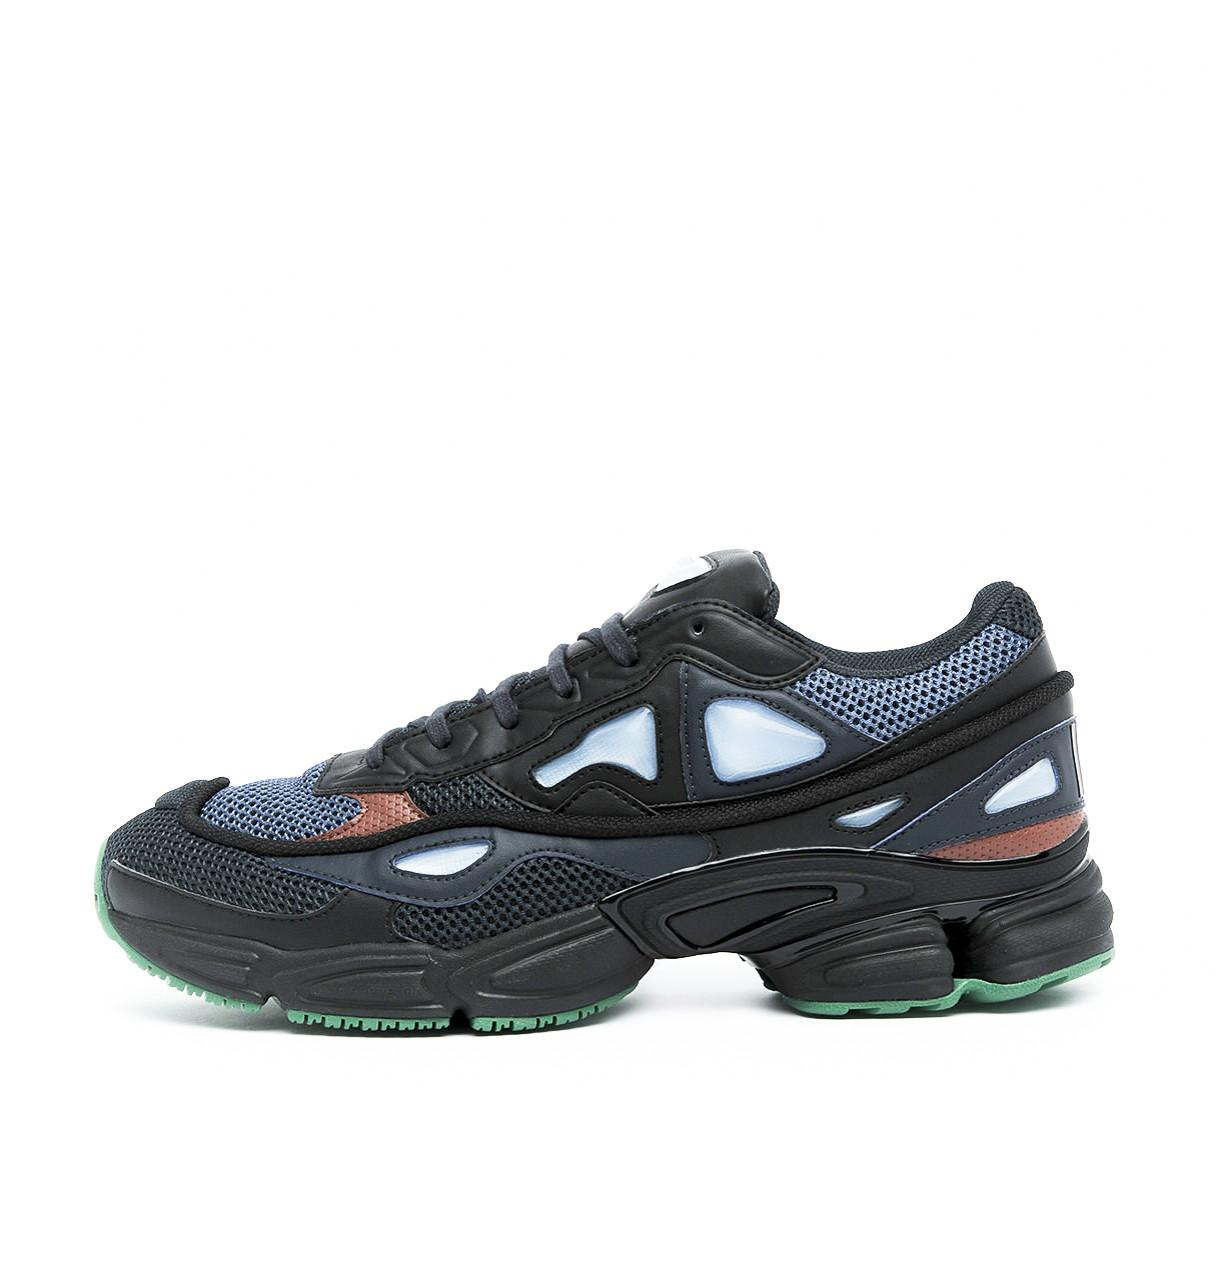 adidas by raf simons ozweego 2 marine sneakers in blue. Black Bedroom Furniture Sets. Home Design Ideas